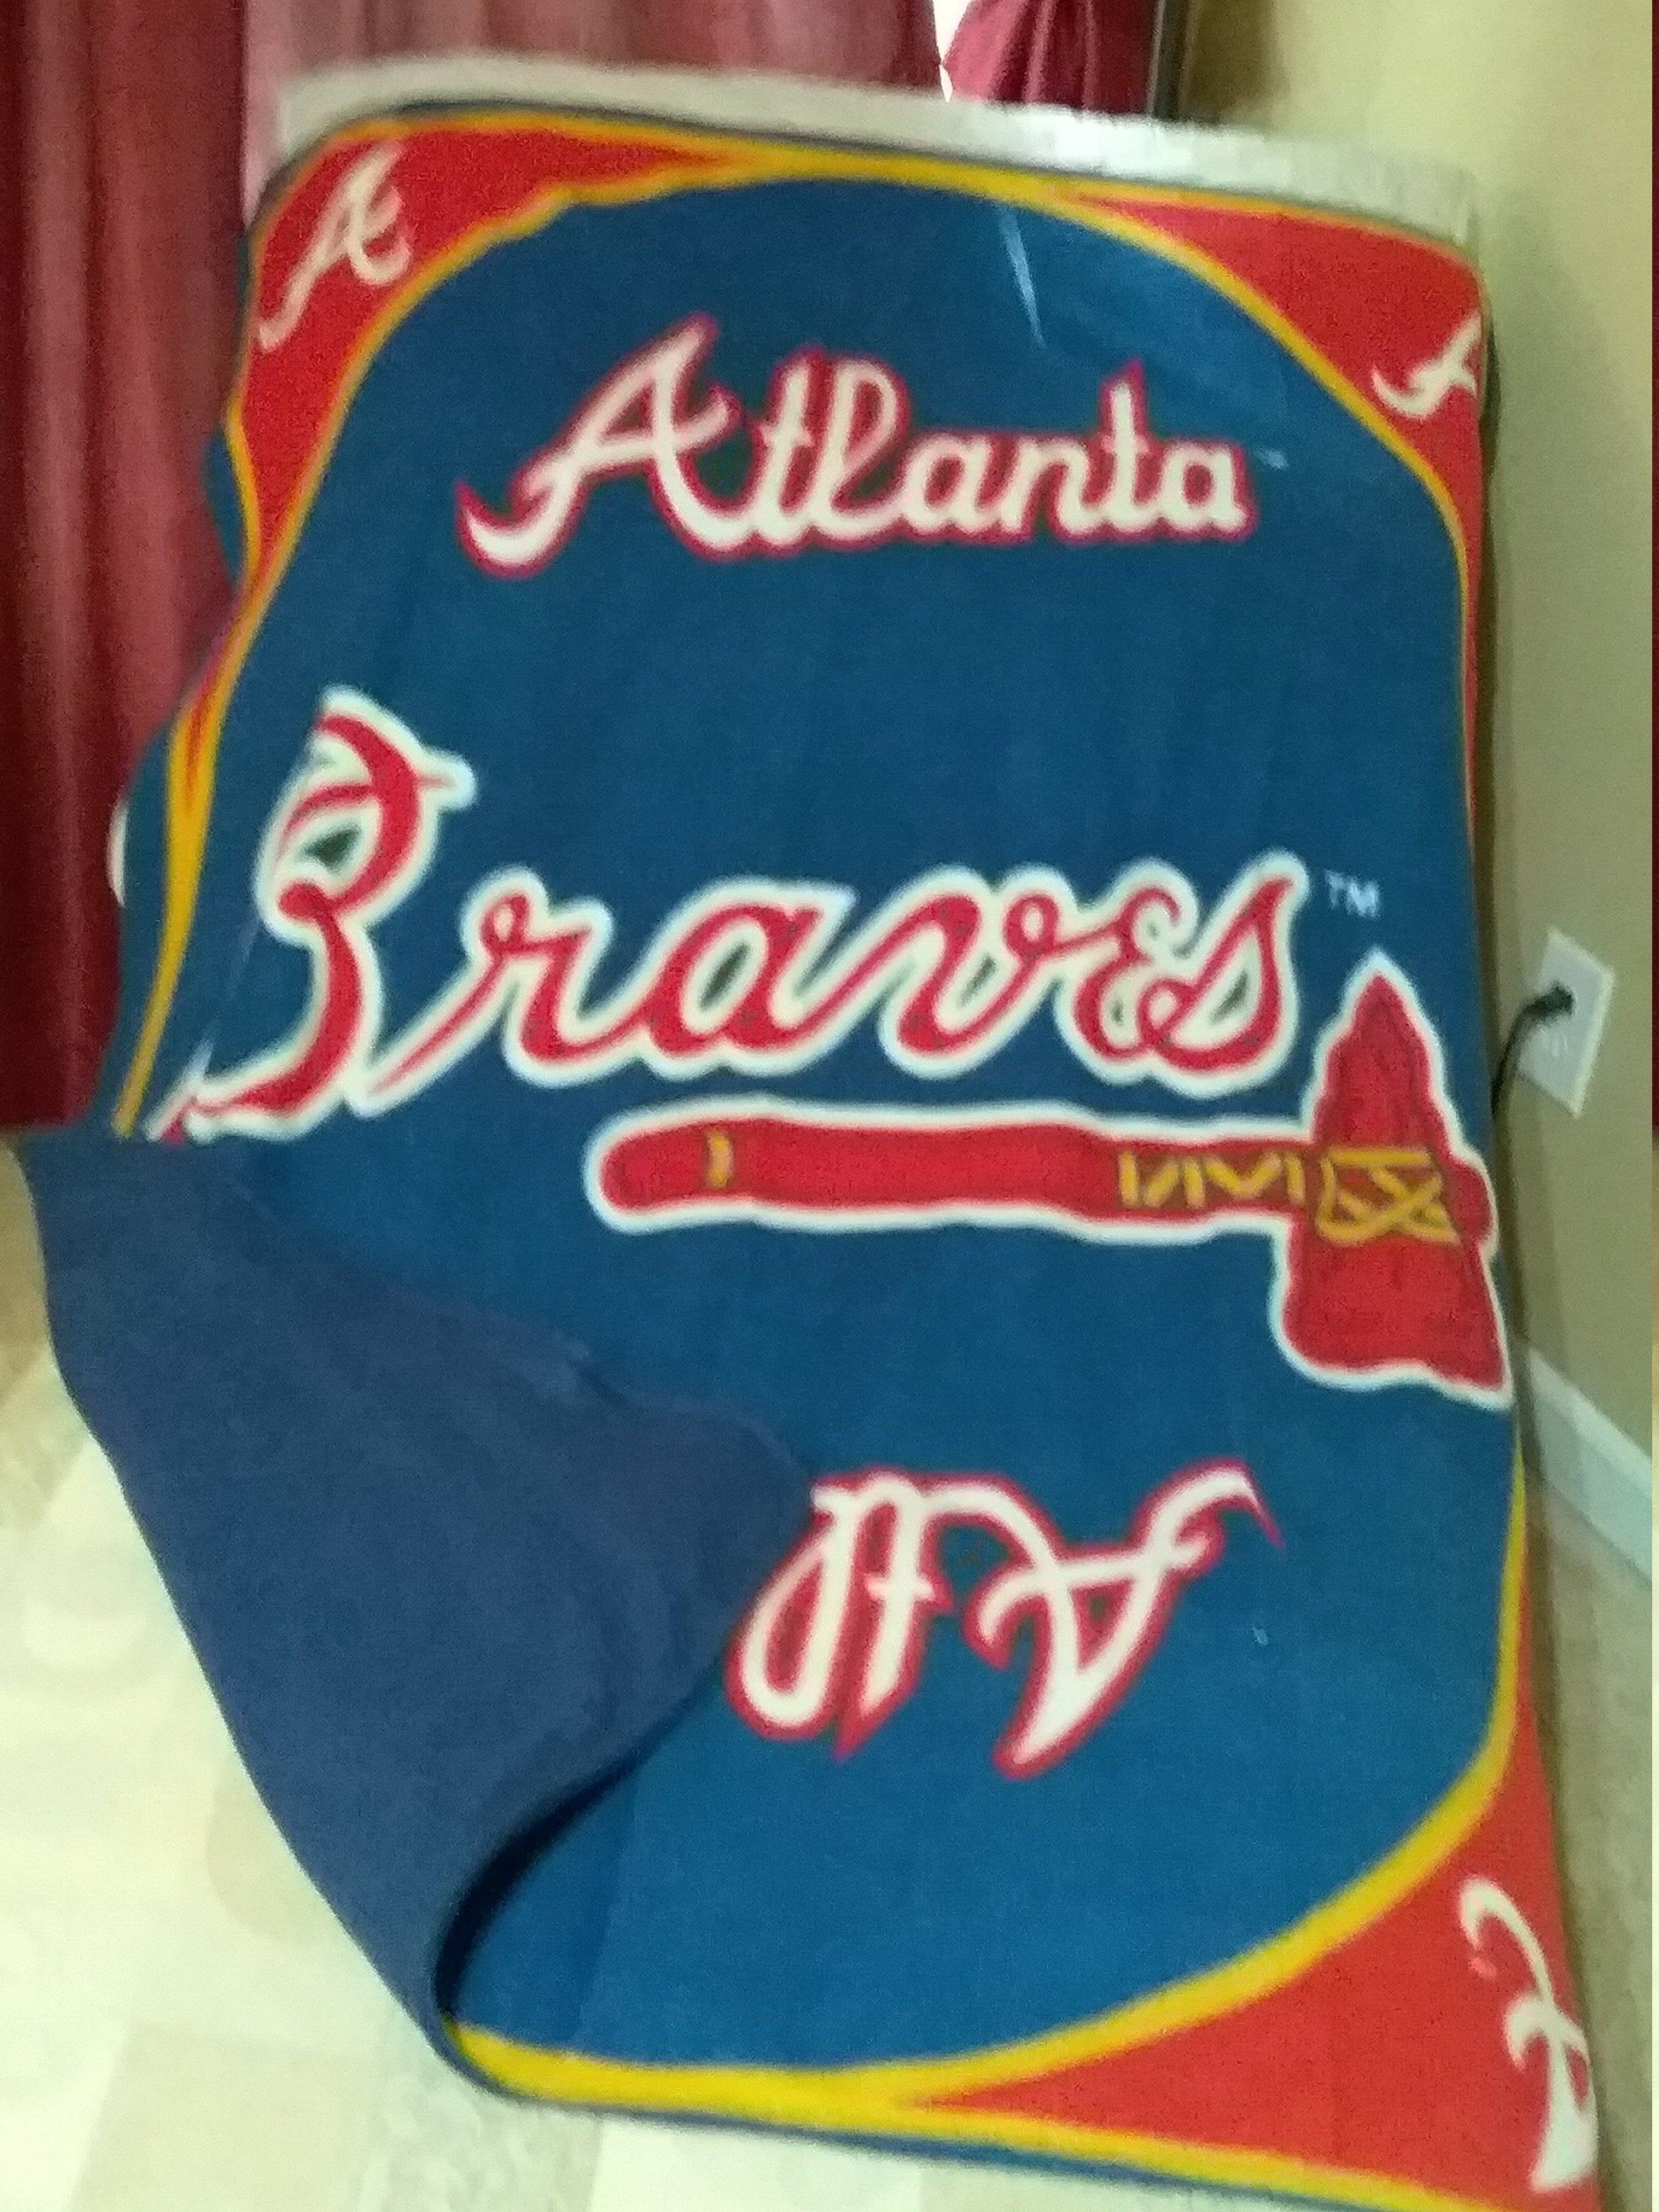 Atlanta Braves Baseball Fleece Blanket Etsy In 2020 Atlanta Braves Baseball Atlanta Braves Braves Baseball